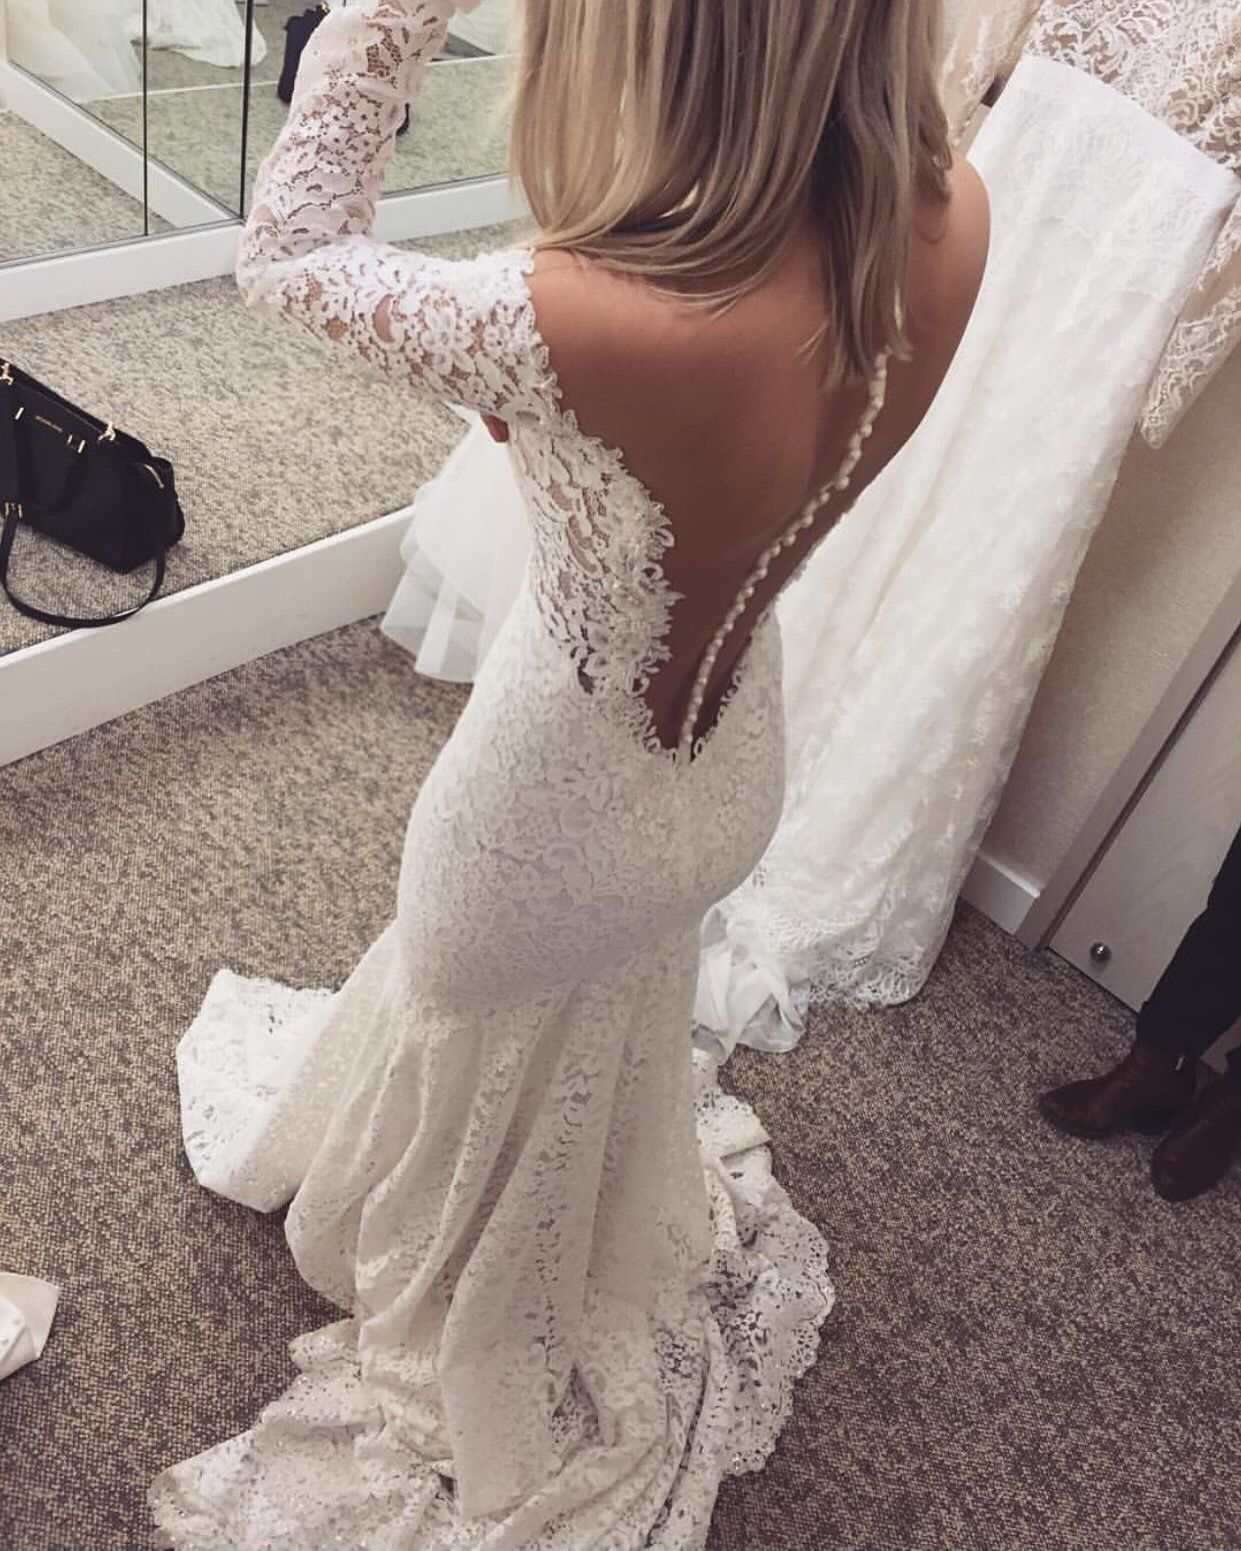 Berta Style 15 13 Is Now Available For Special Off The Rack Price At Our Berta Nyc Store 3 Wedding Dresses Dream Wedding Dresses Wedding